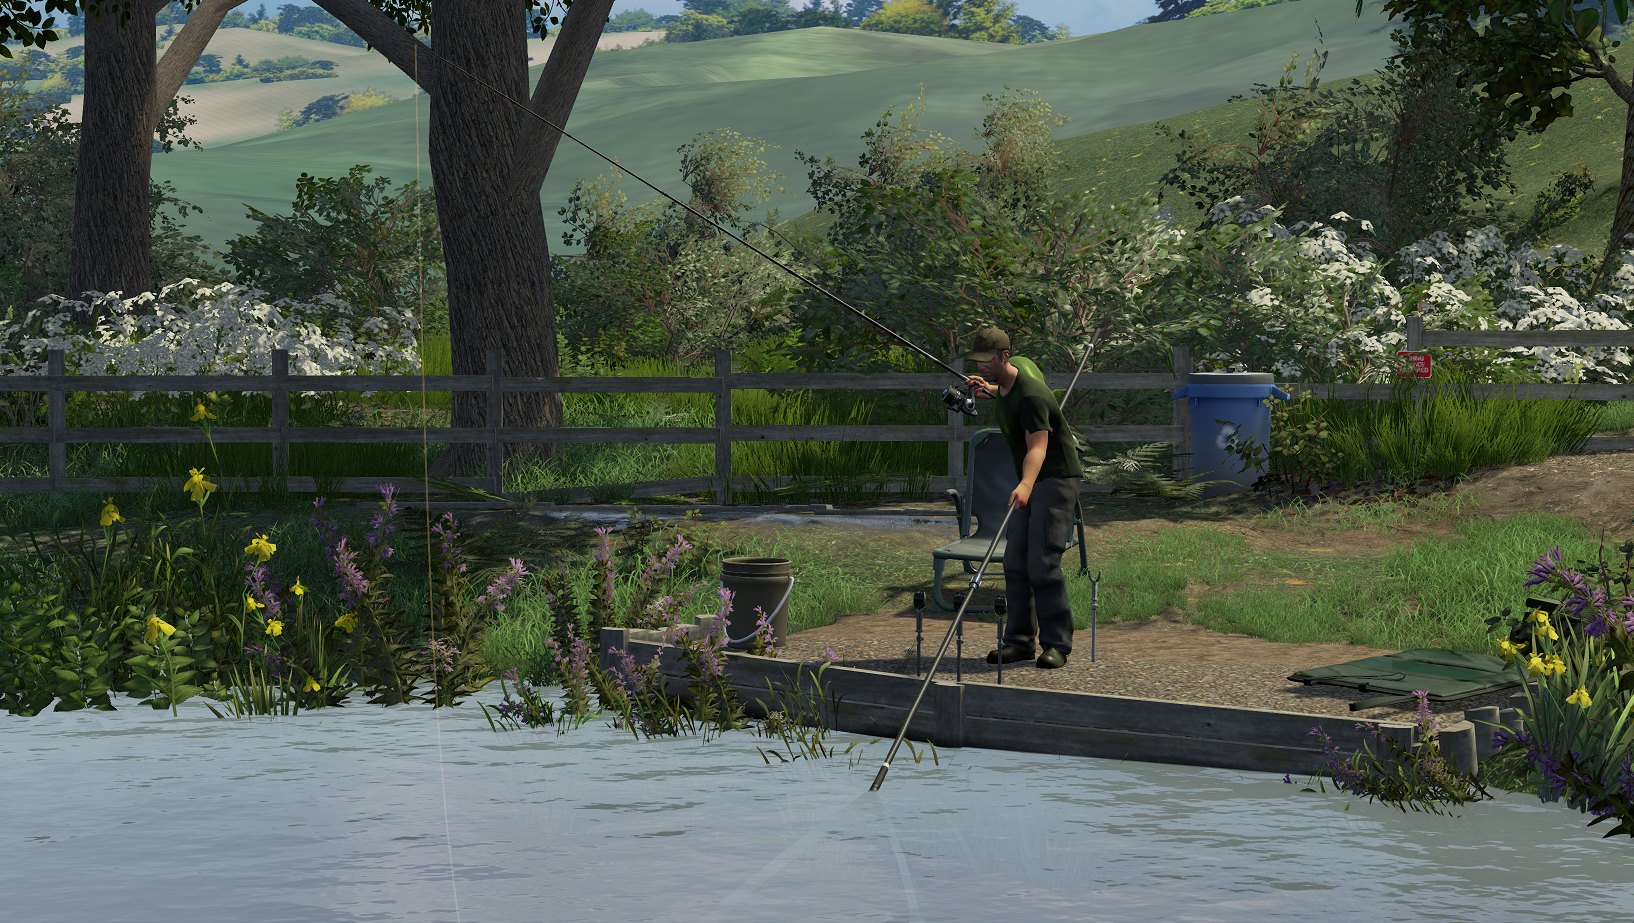 Dovetail games fishing exits steam early access for late for Dovetail games fishing